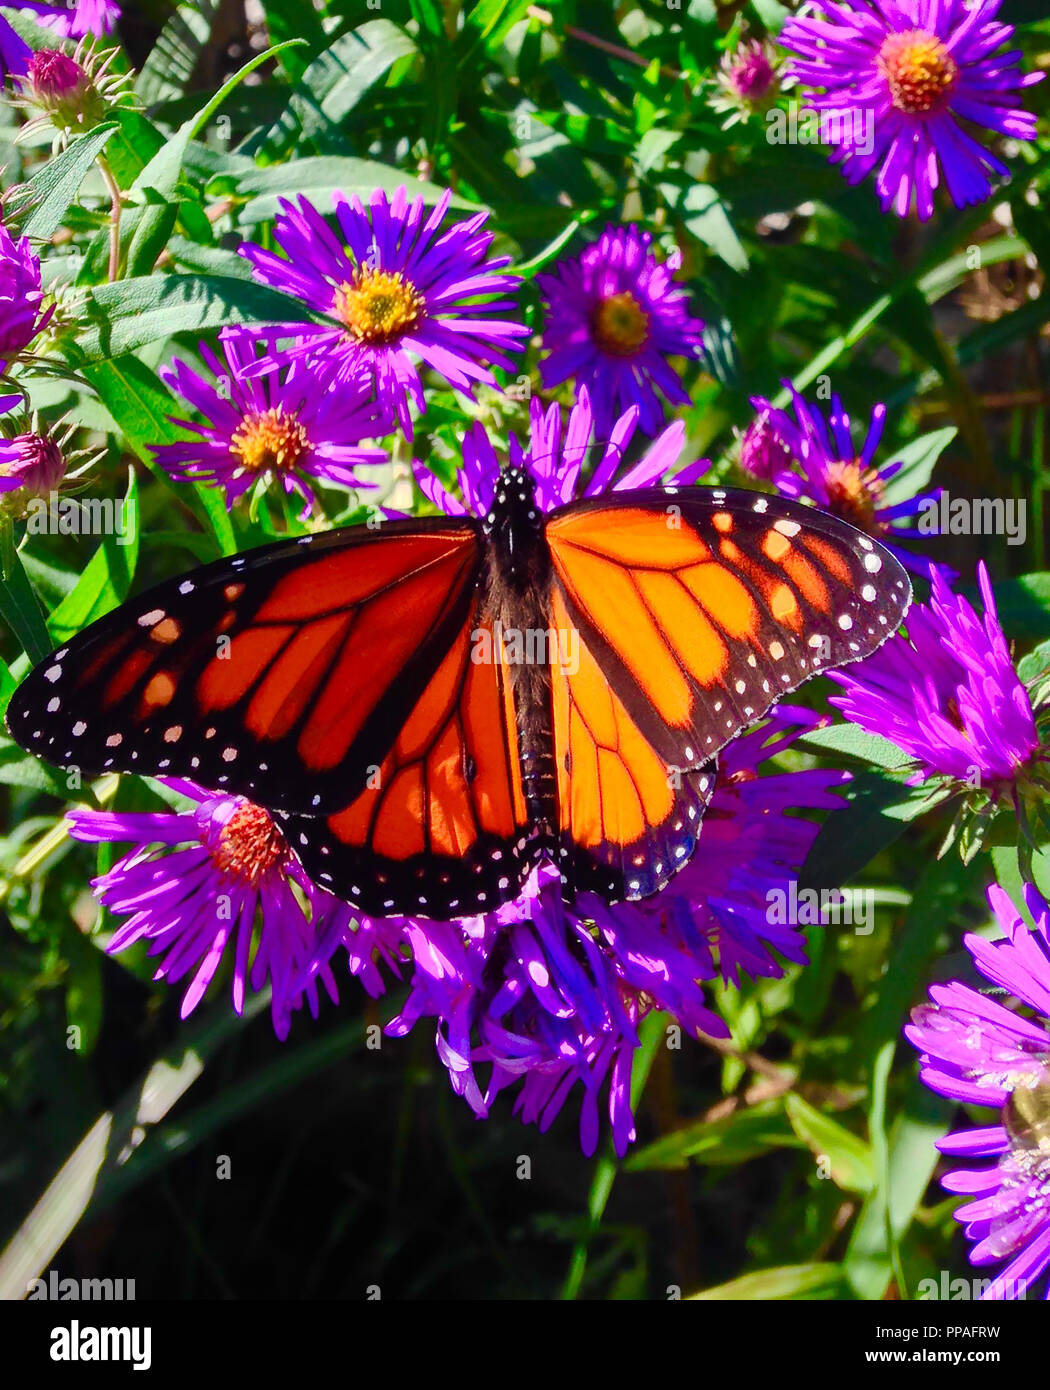 Monarch butterfly resting - Stock Image